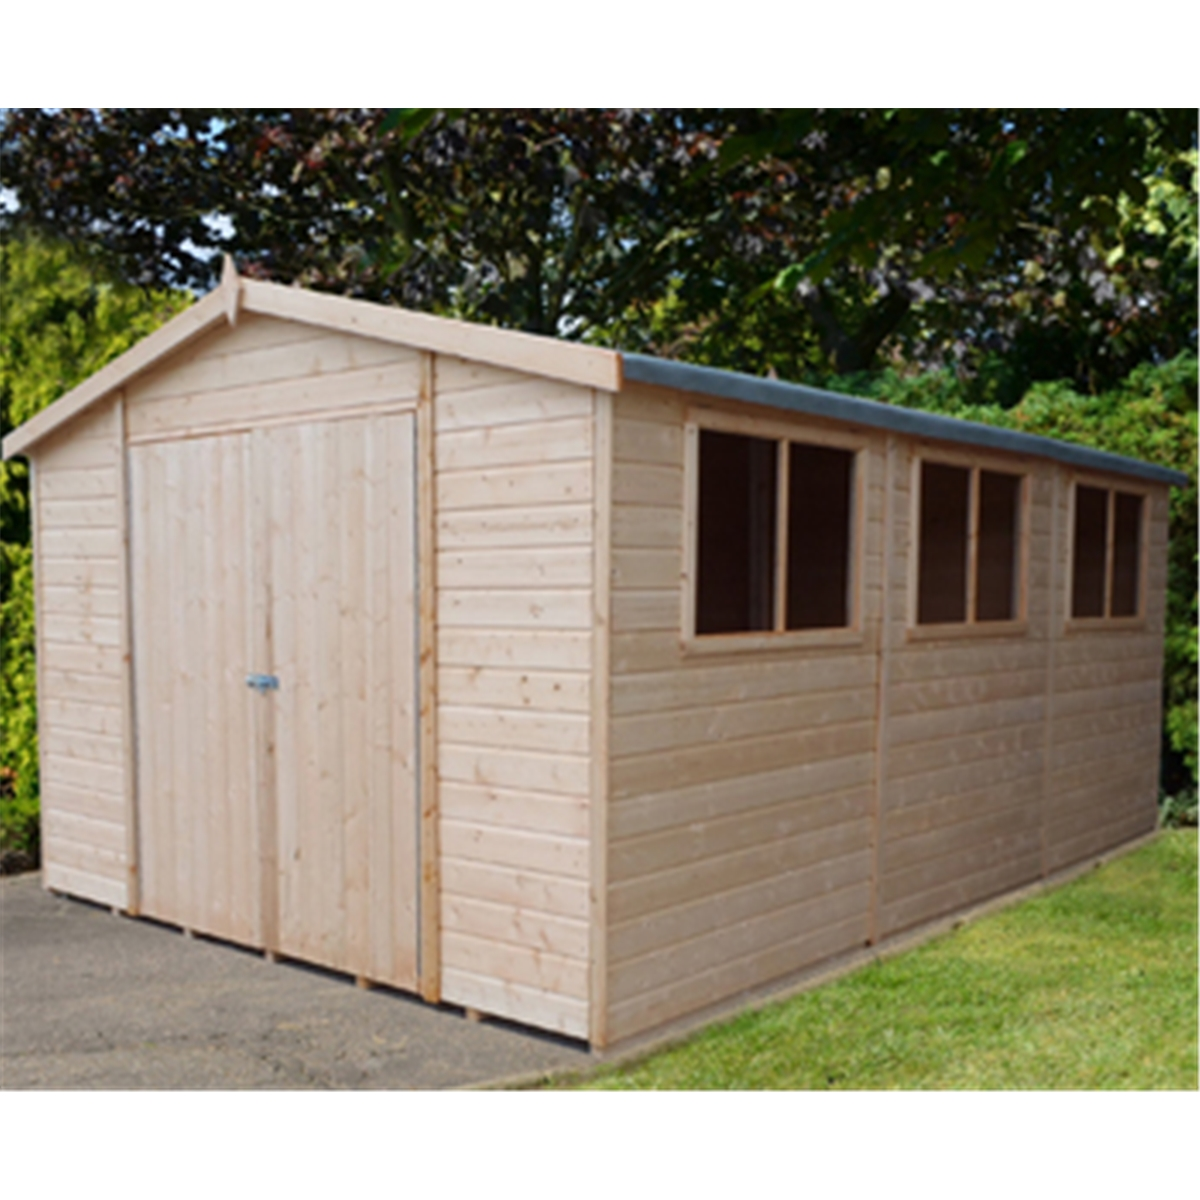 20 x 10 Tongue And Groove Wooden Garden Shed / Workshop (12mm Tongue And Groove Floor) | ShedsFirst